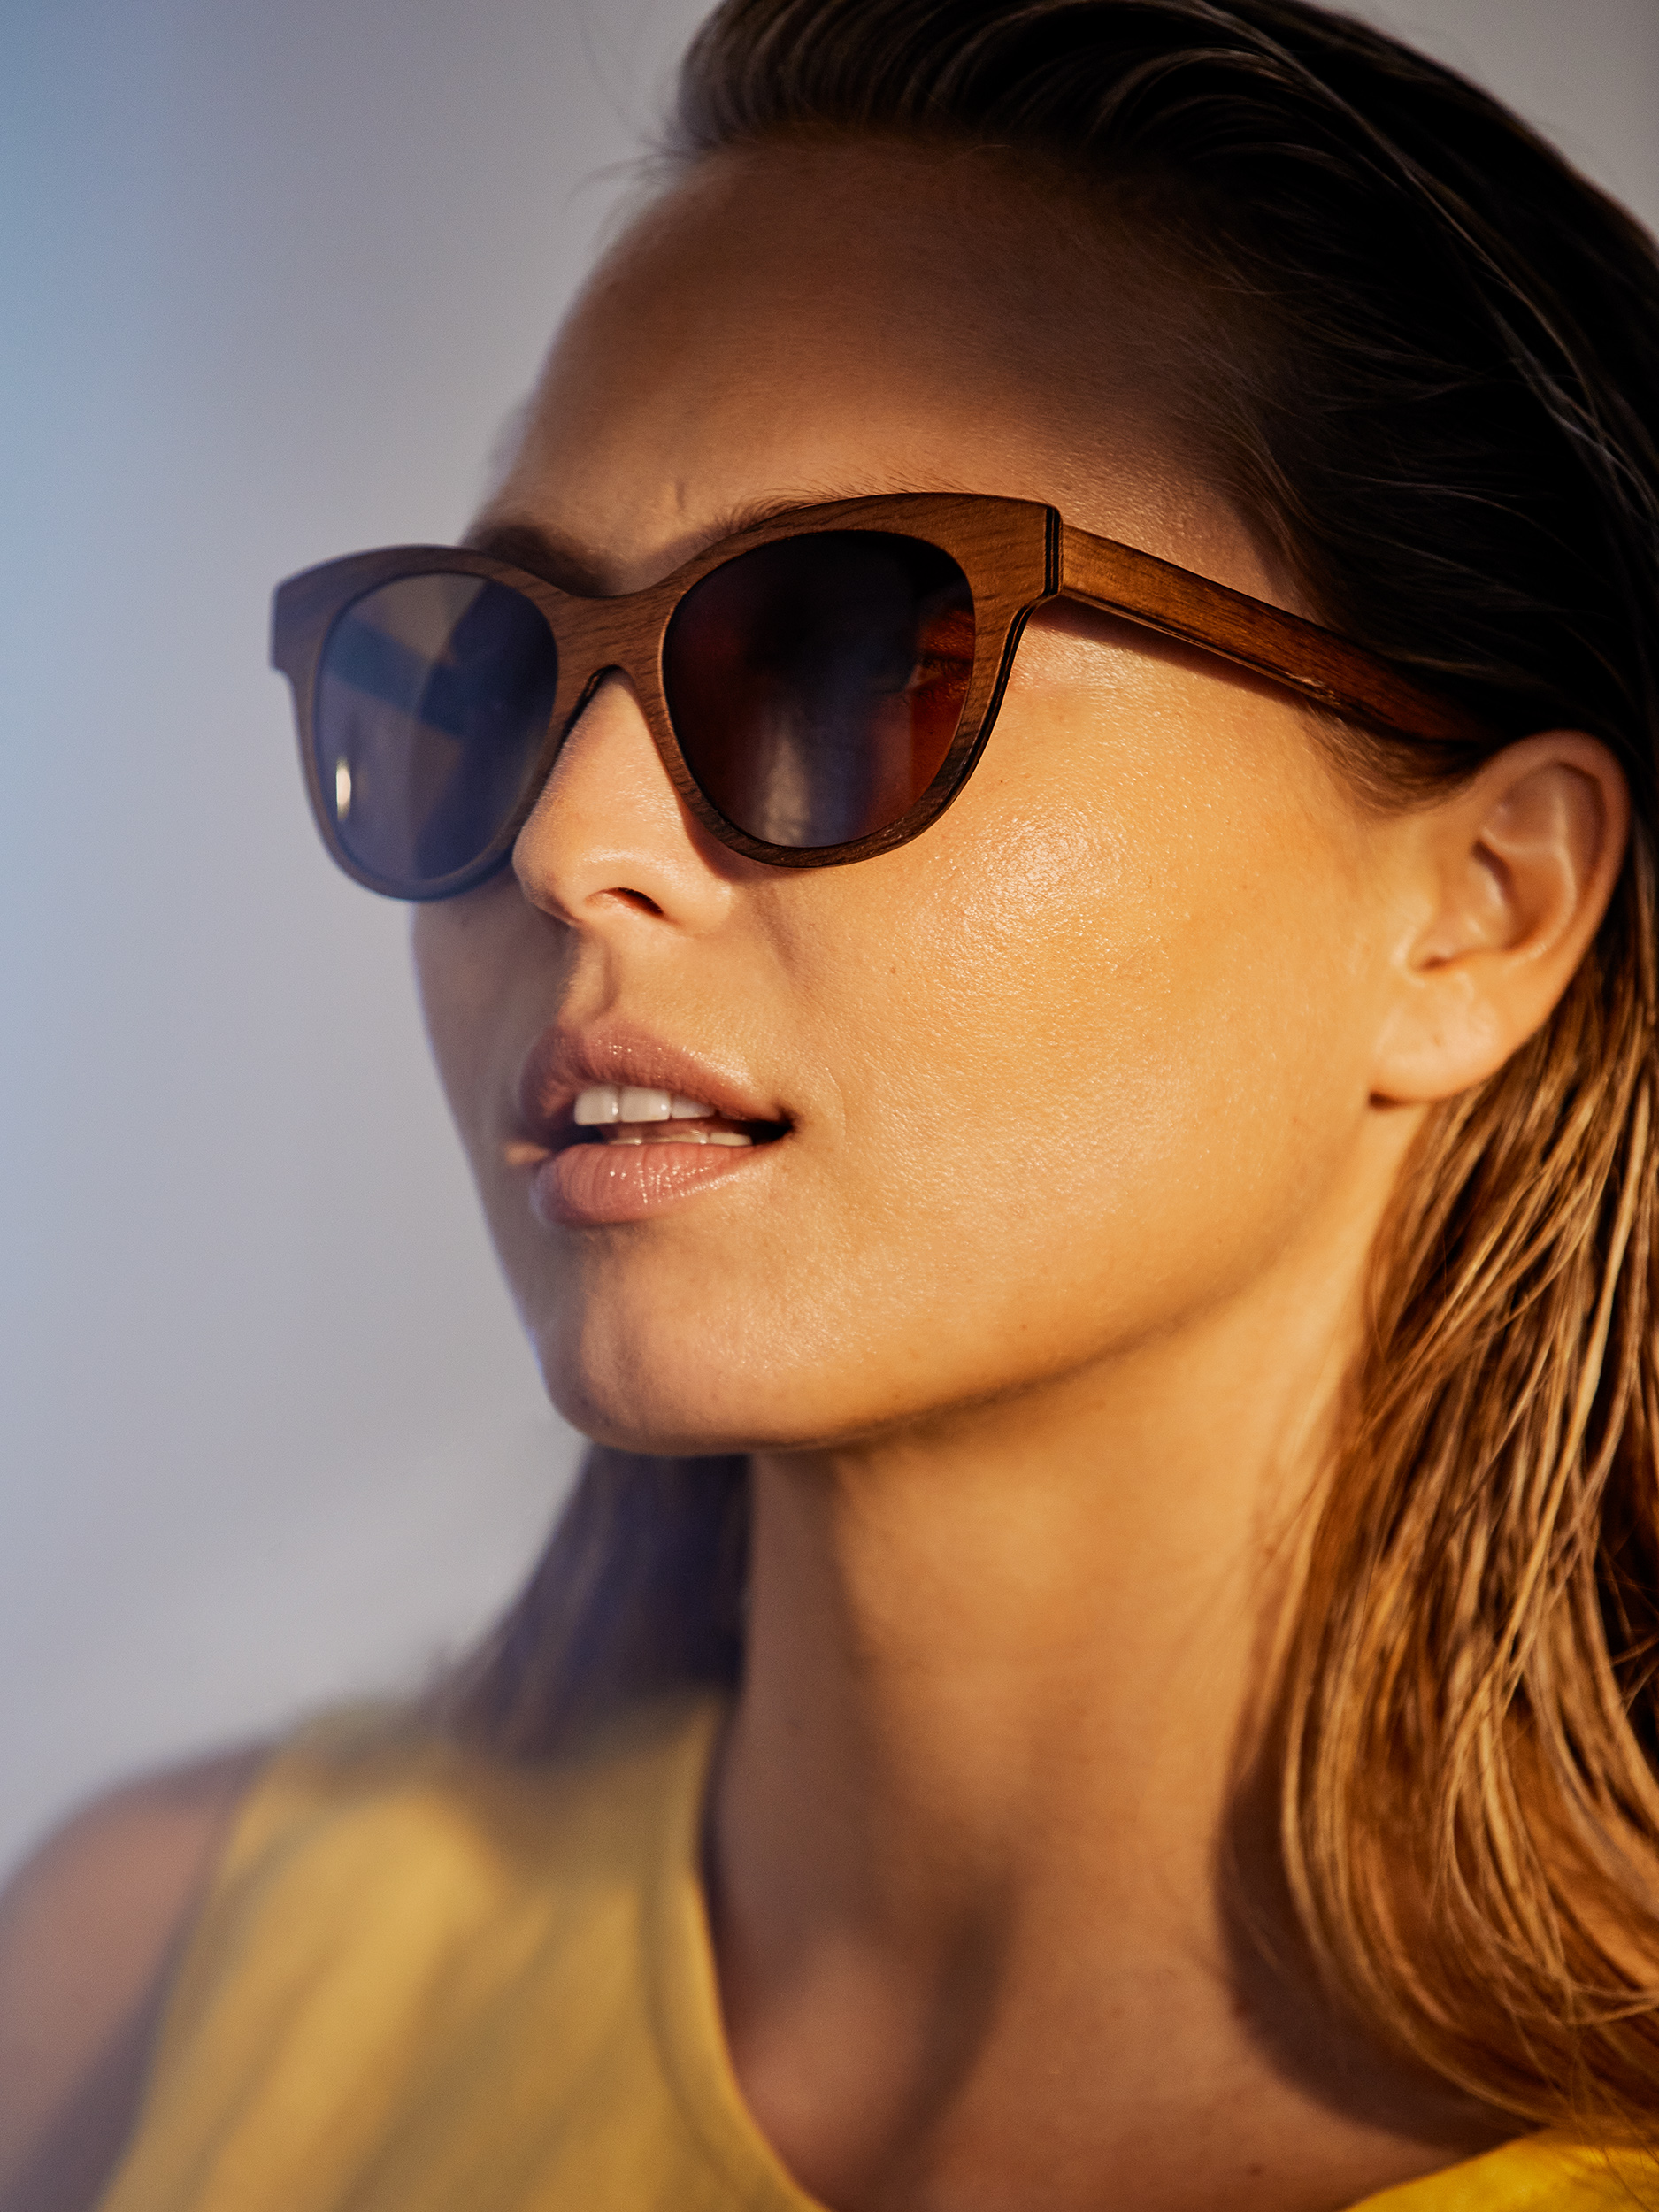 BALLO | Ethical, Eco-friendly & Sustainable sunglasses